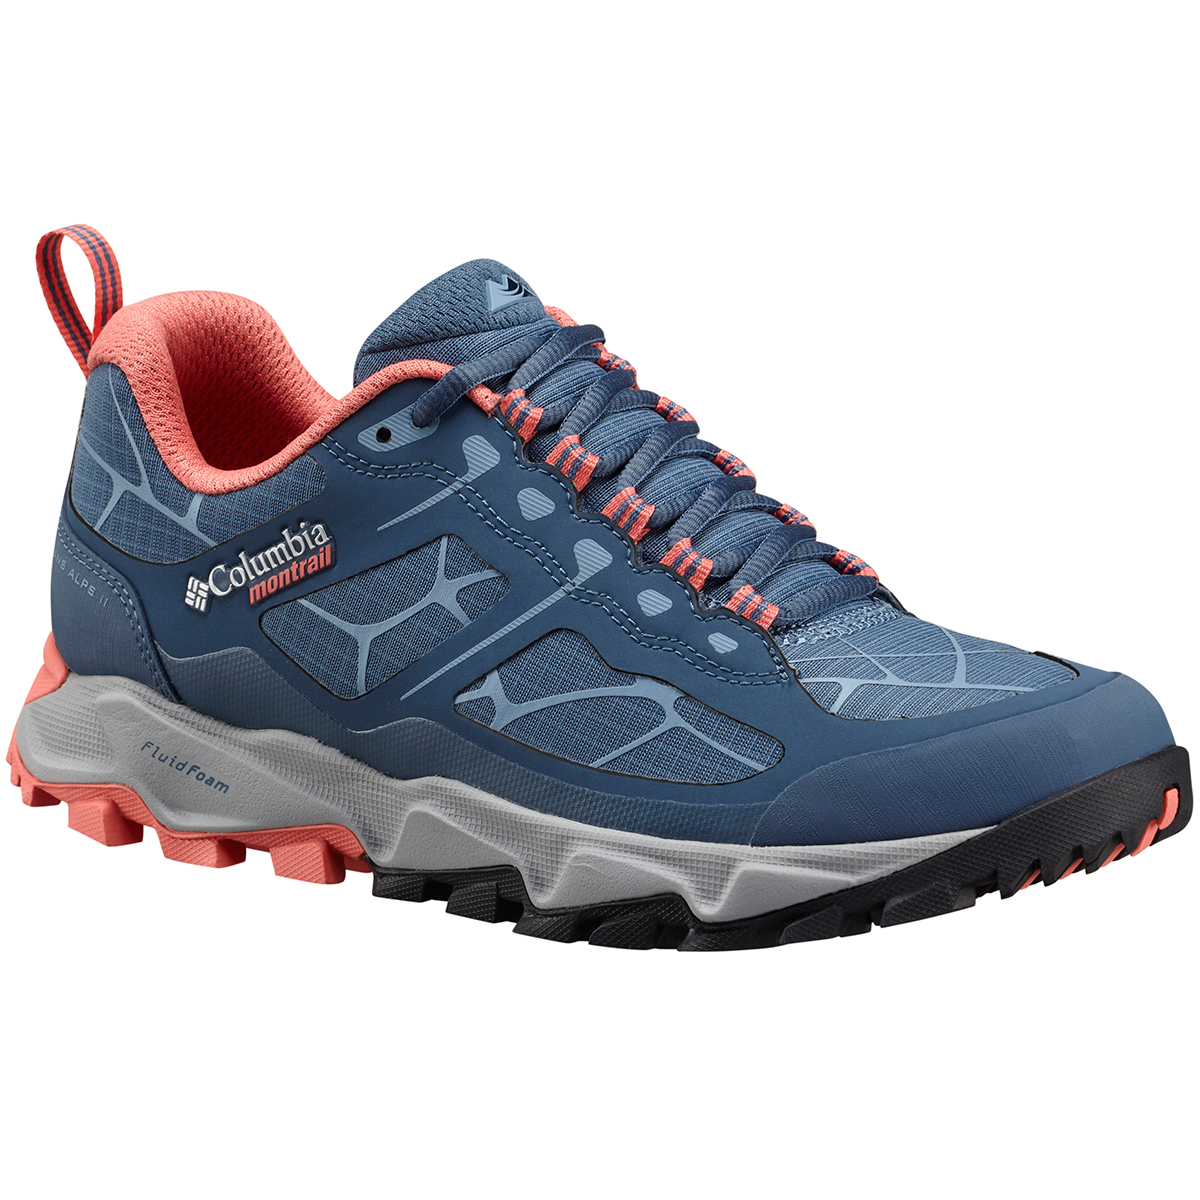 Trans Alps II Trail Running Shoes